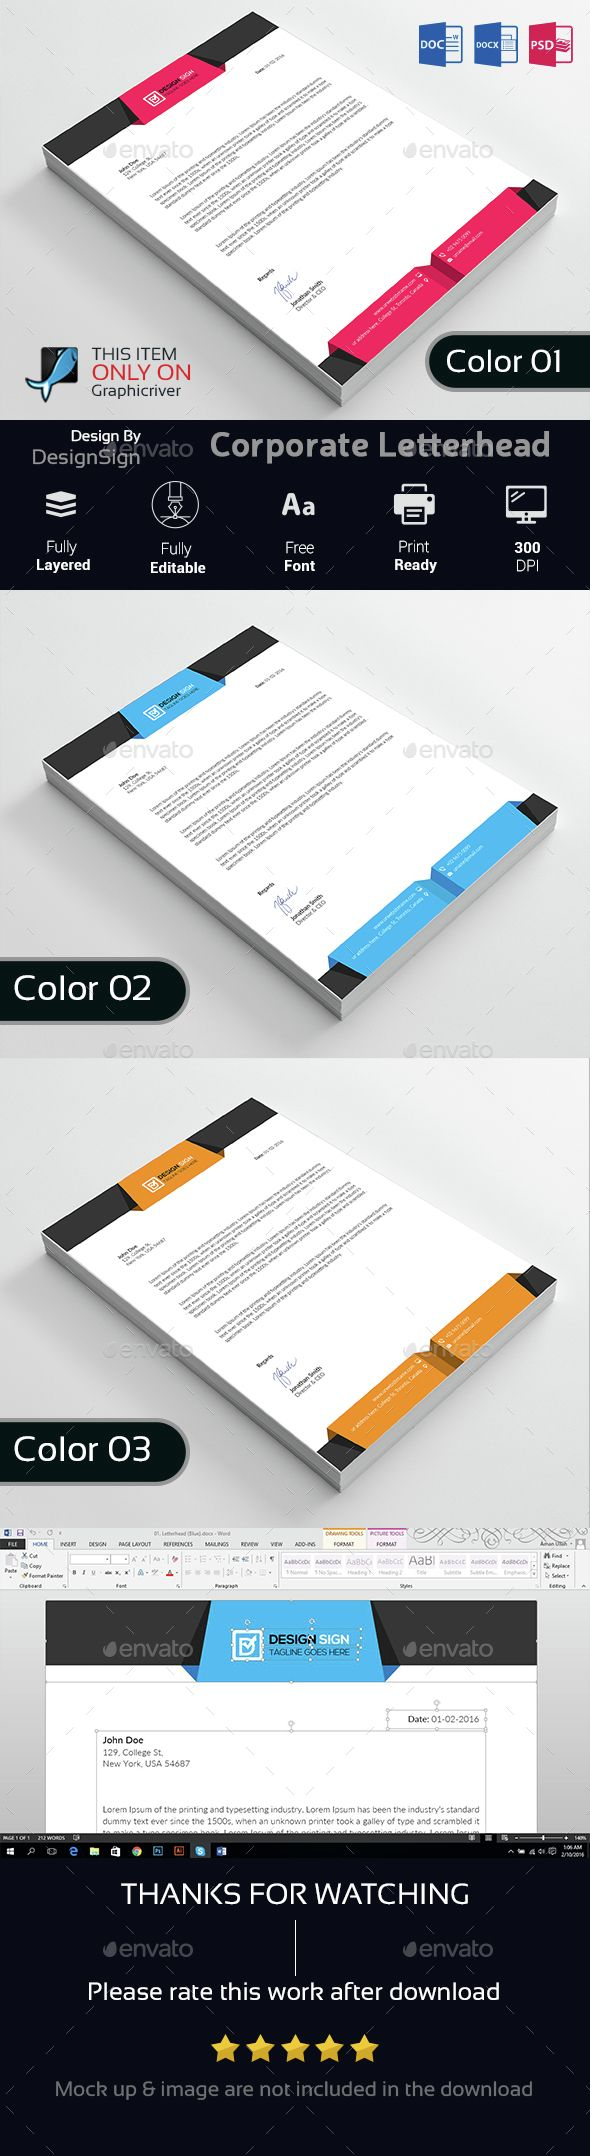 54 best letterheads images on pinterest letterhead stationery corporate letterhead stationery print templates download here https graphicriver spiritdancerdesigns Choice Image